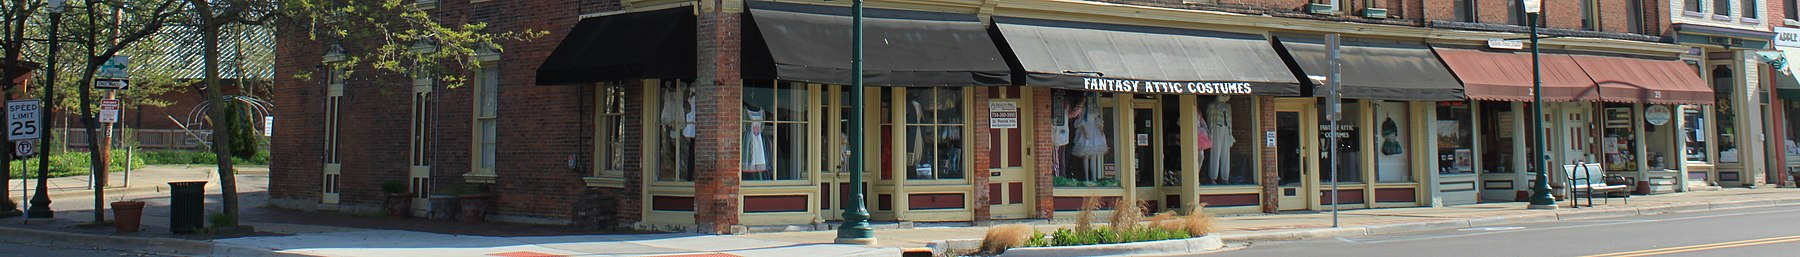 Follet House Hotel Historic Structure Ypsilanti Michigan (cropped).JPG